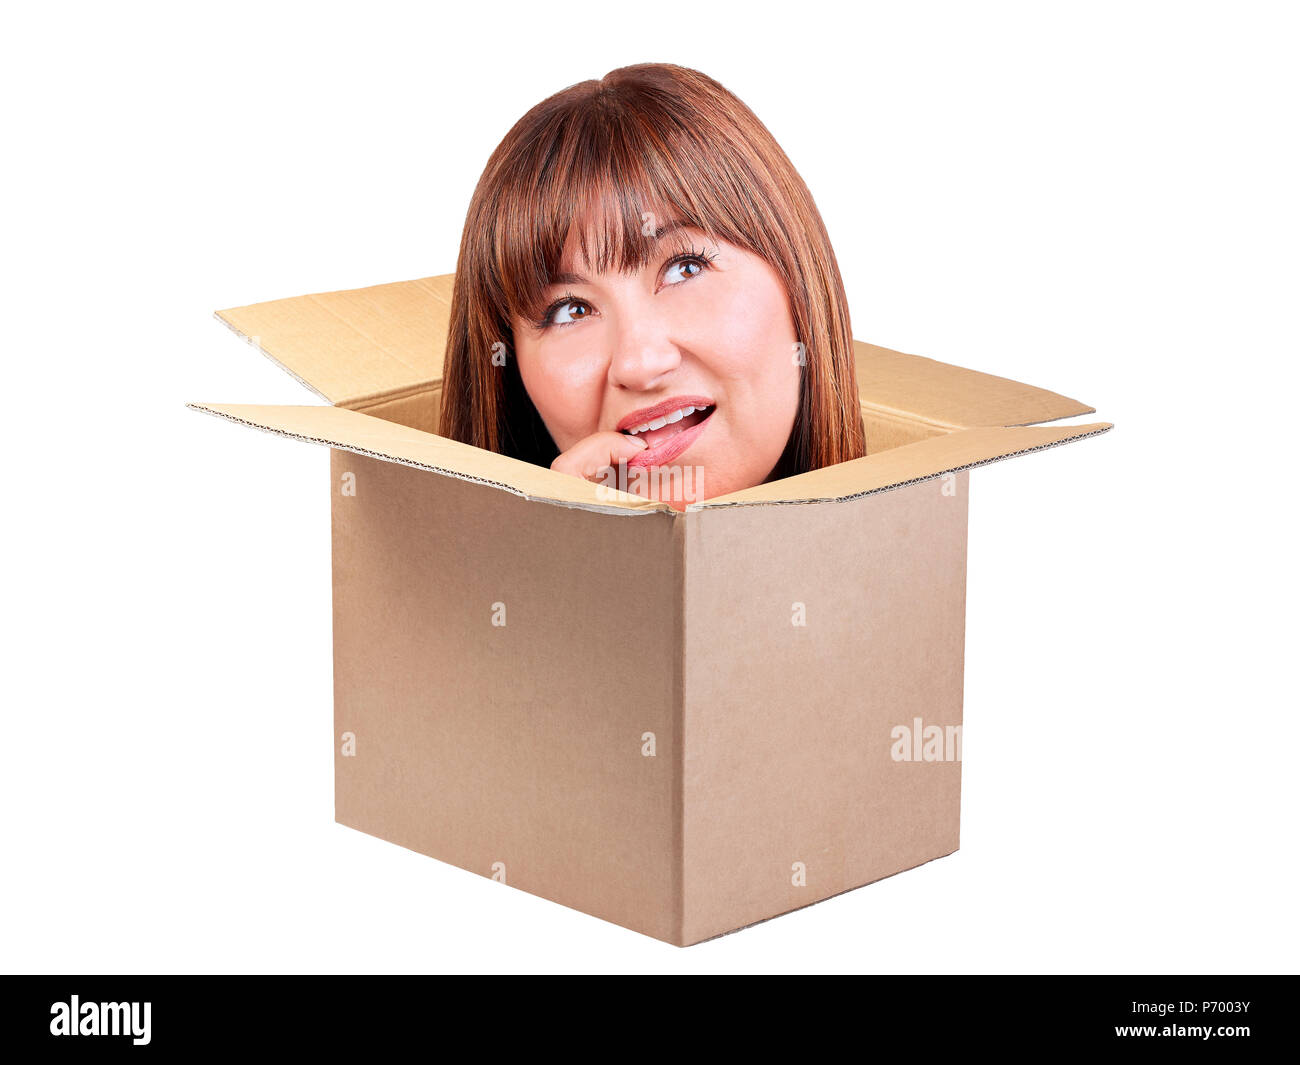 Brunette woman thinking out box isolated - Stock Image